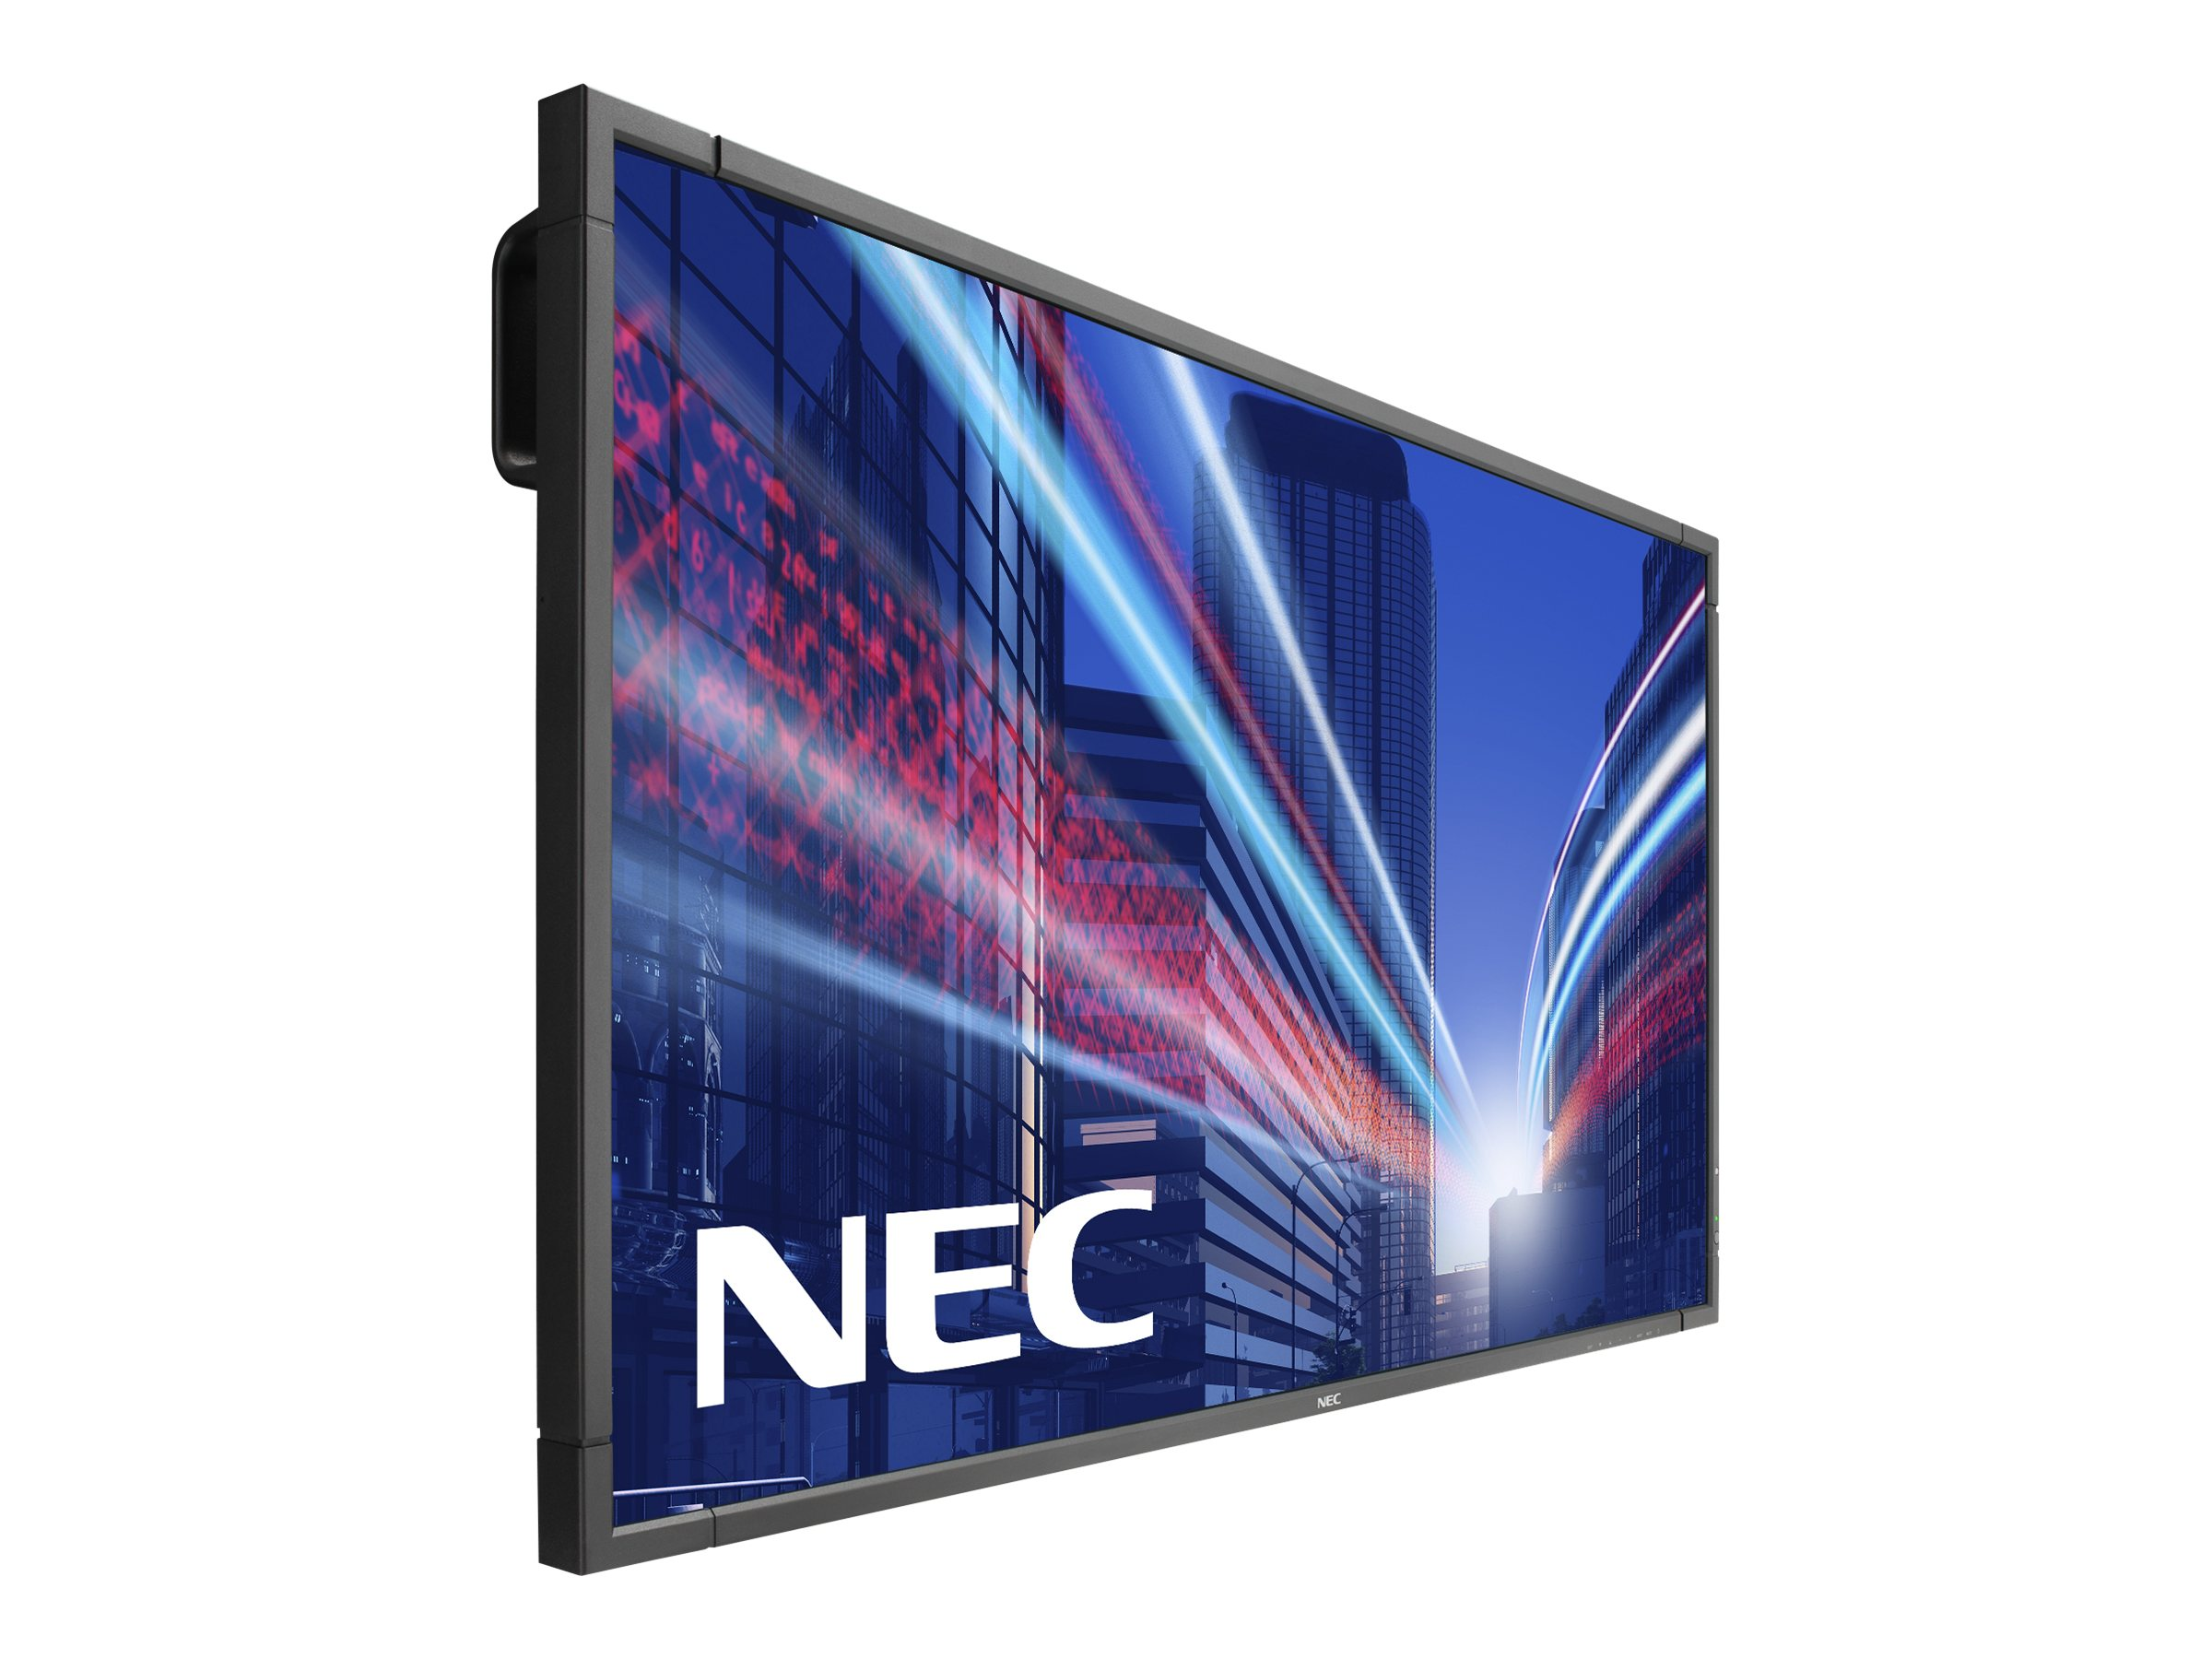 NEC 46 P463 Full HD LED-LCD Monitor, Black